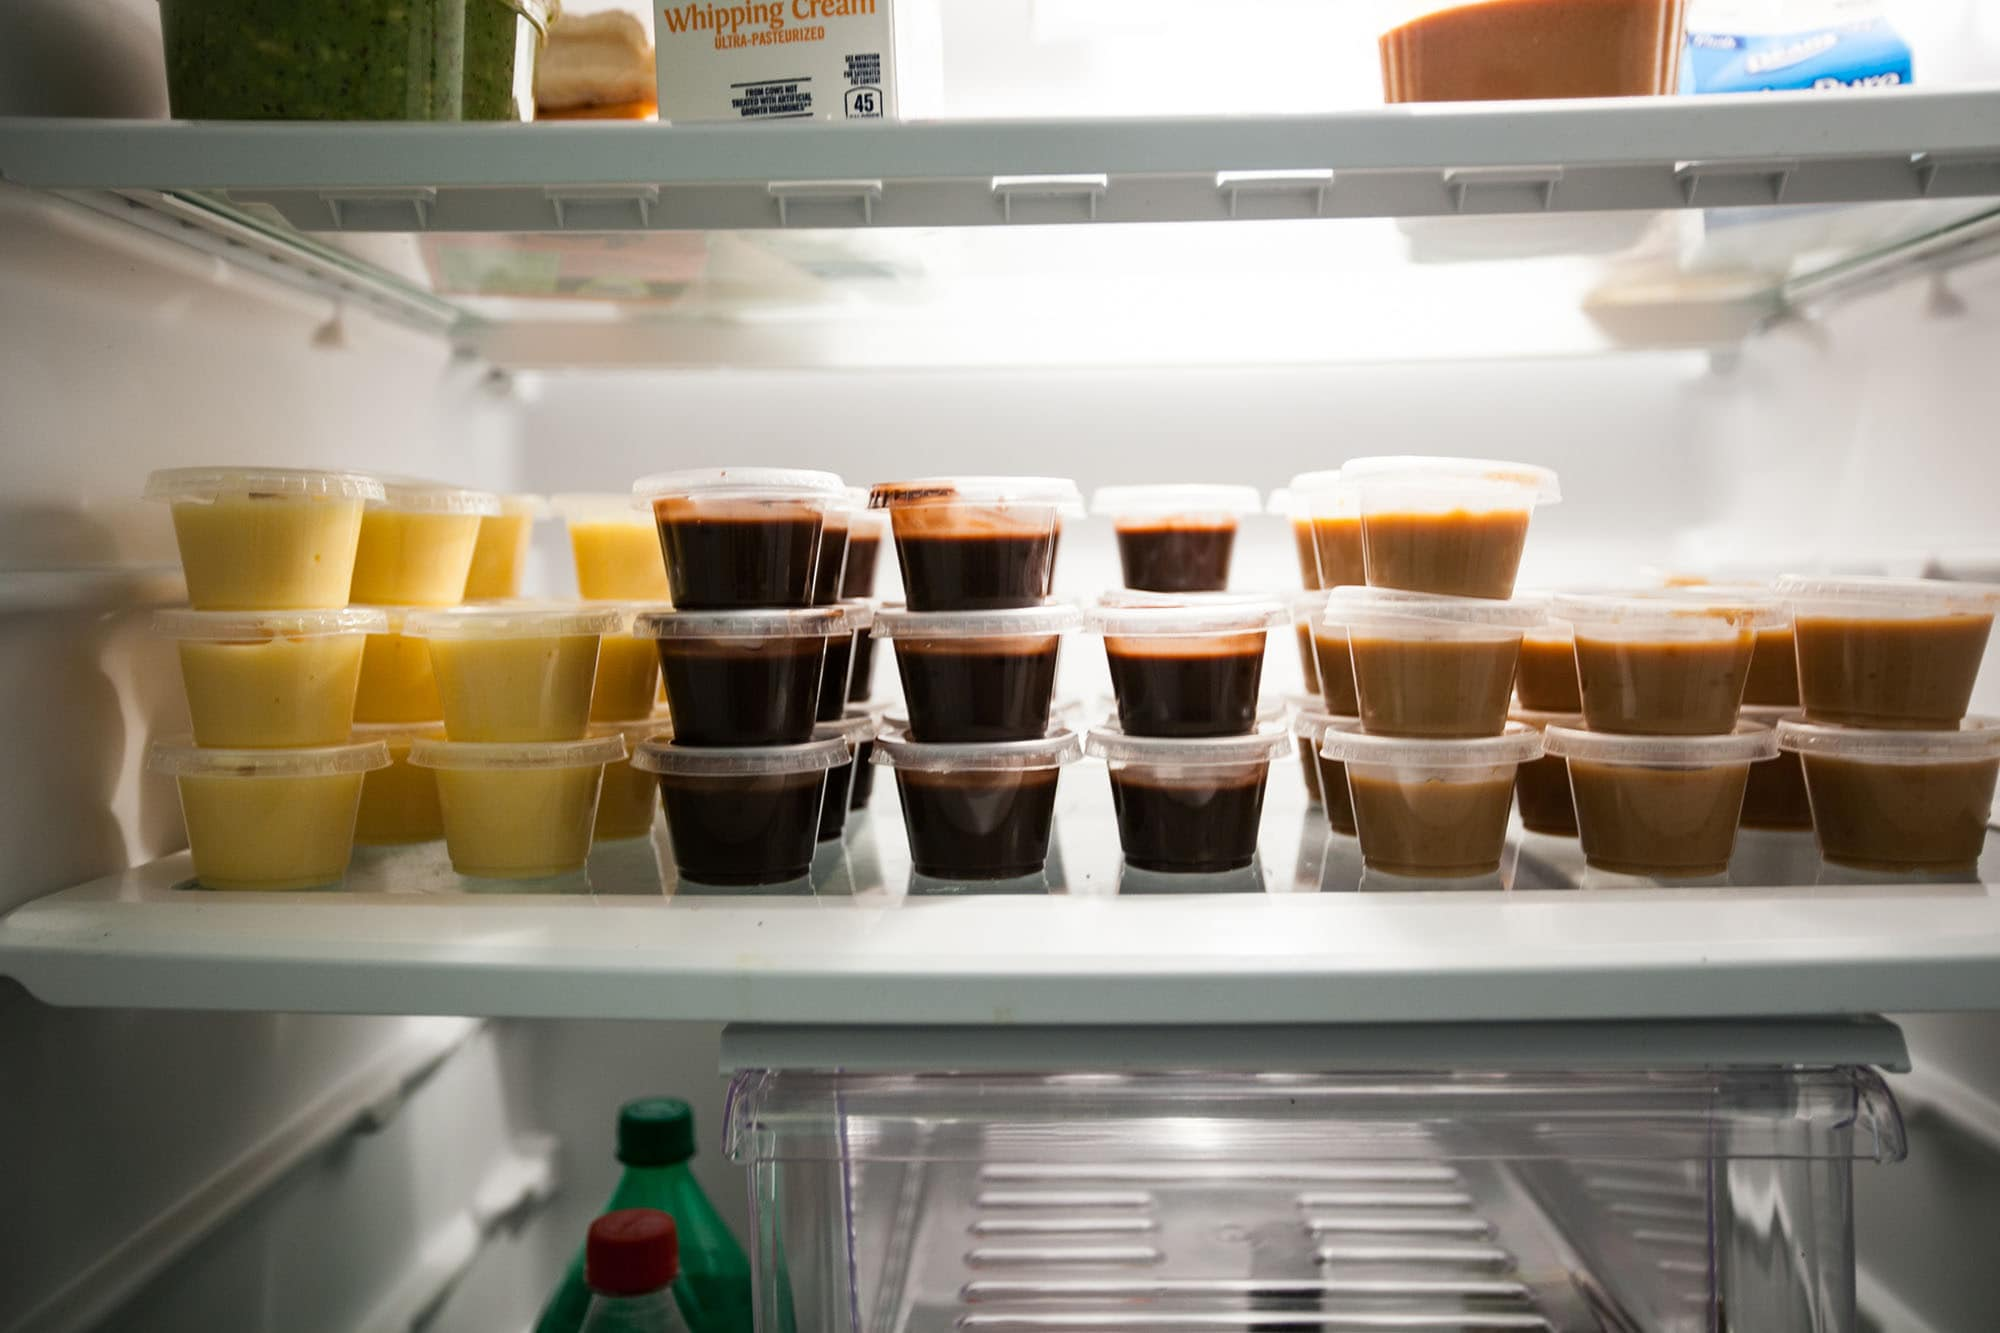 Horchata, Mudslide, and Buttery Nipple (Slippery Nipple) pudding shots in my fridge.